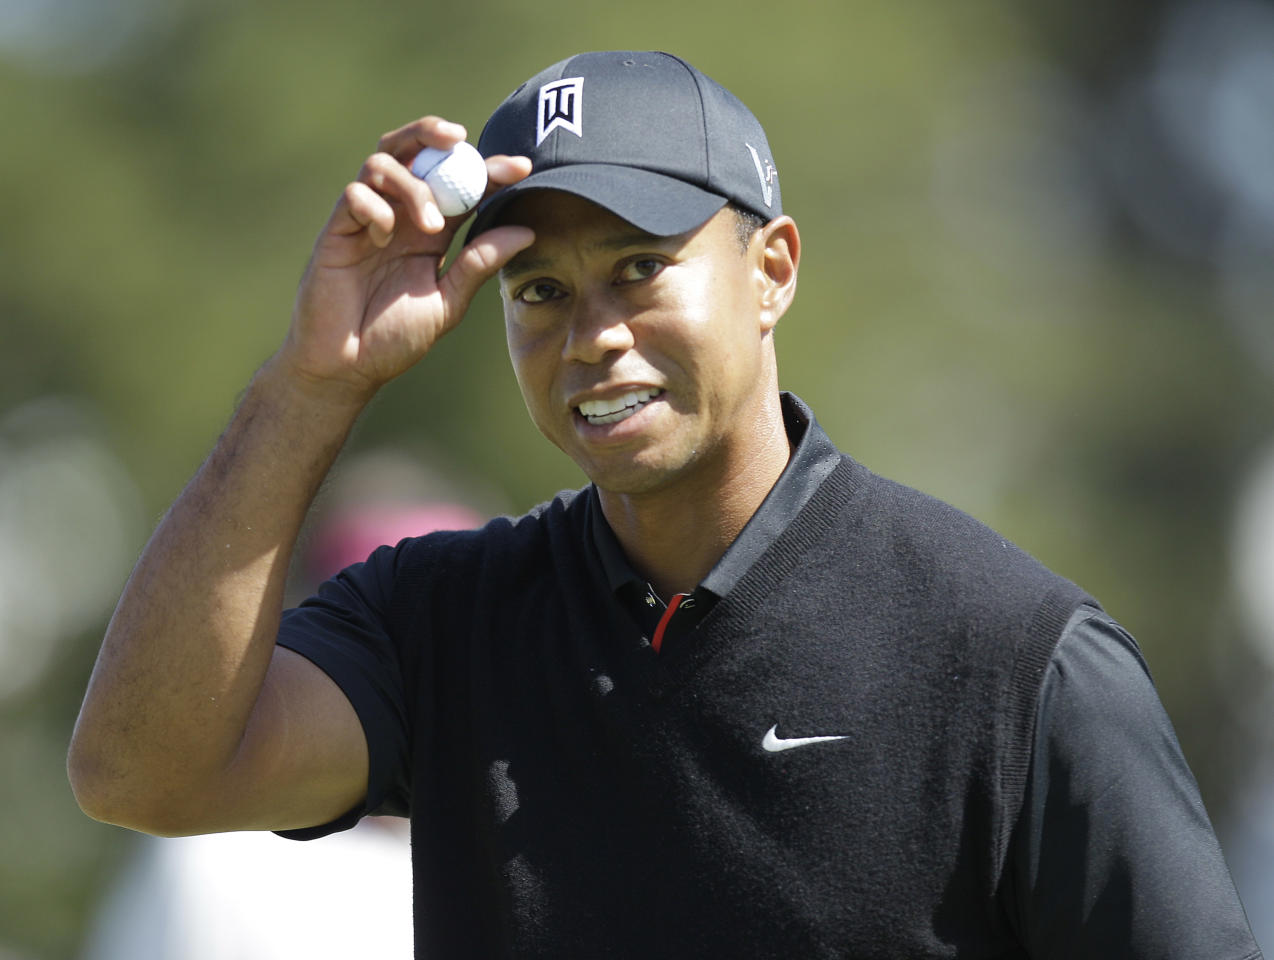 Tiger Woods reacts after making a birdie on the 10th hole during the second round of the U.S. Open Championship golf tournament Friday, June 15, 2012, at The Olympic Club in San Francisco. (AP Photo/Ben Margot)